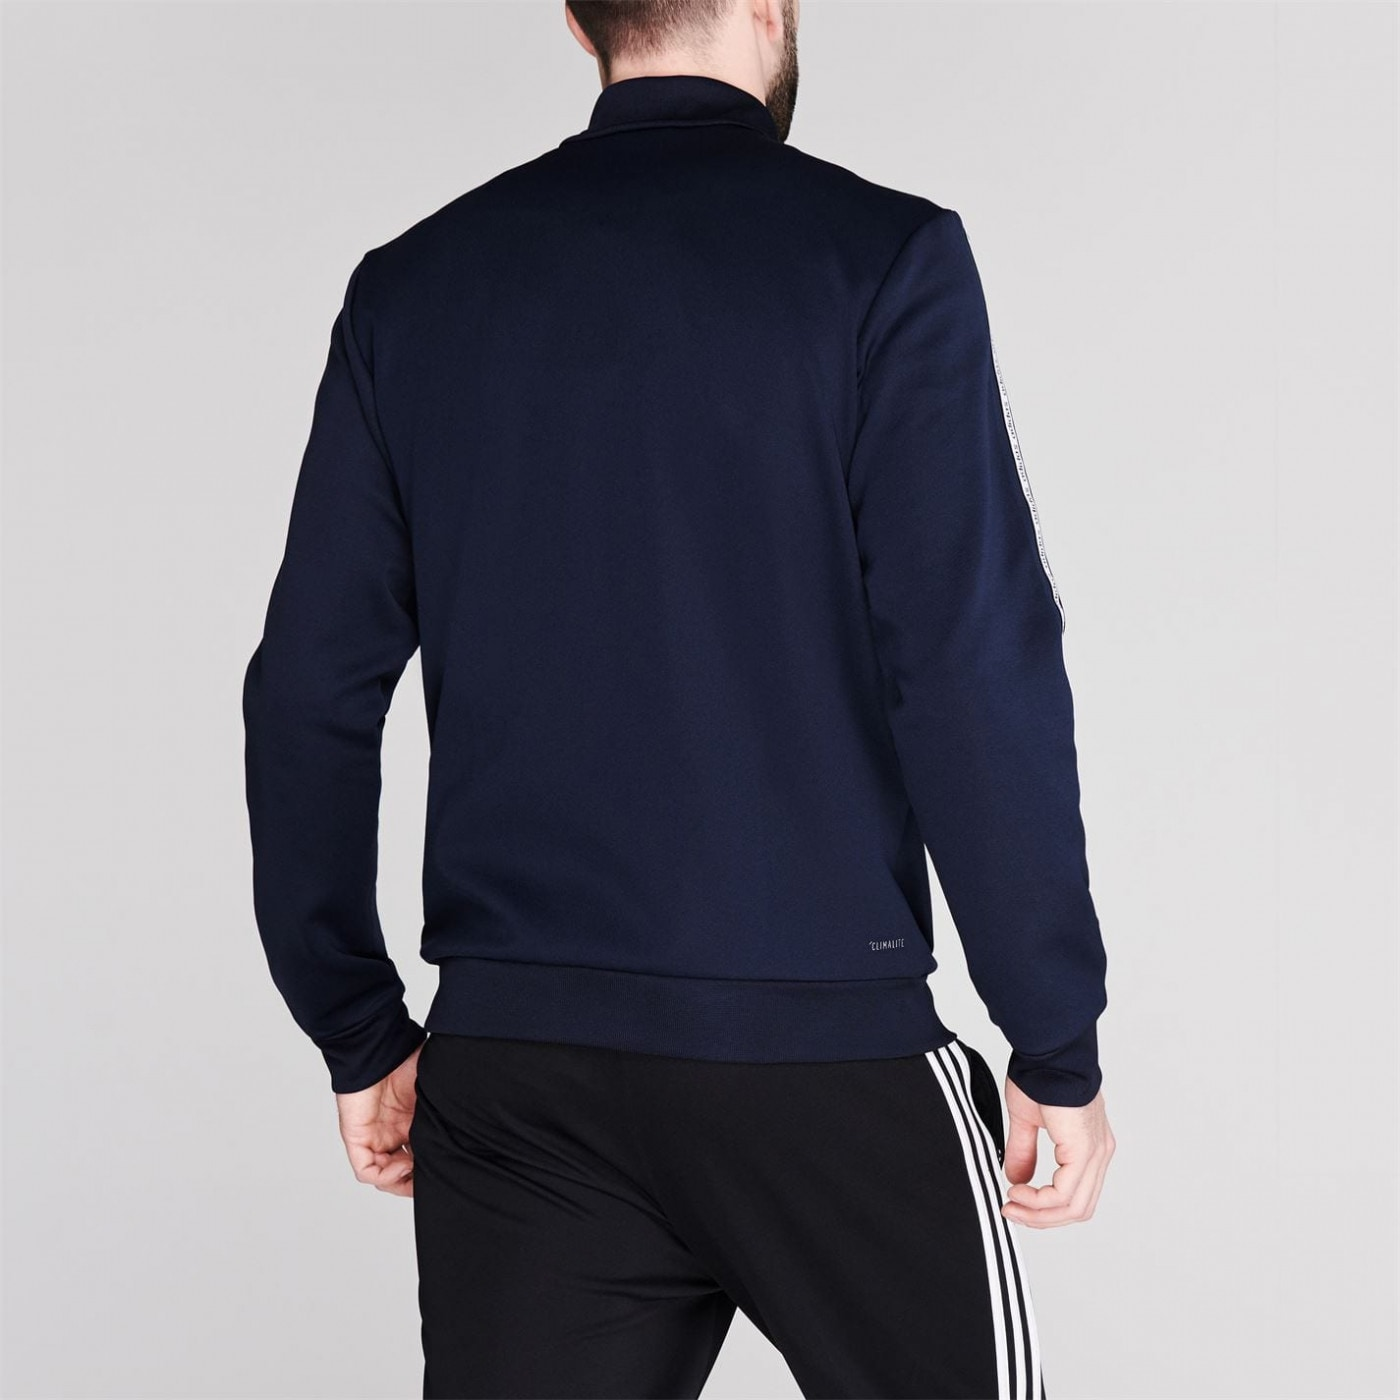 Adidas C90 Taping Tracksuit Top Mens